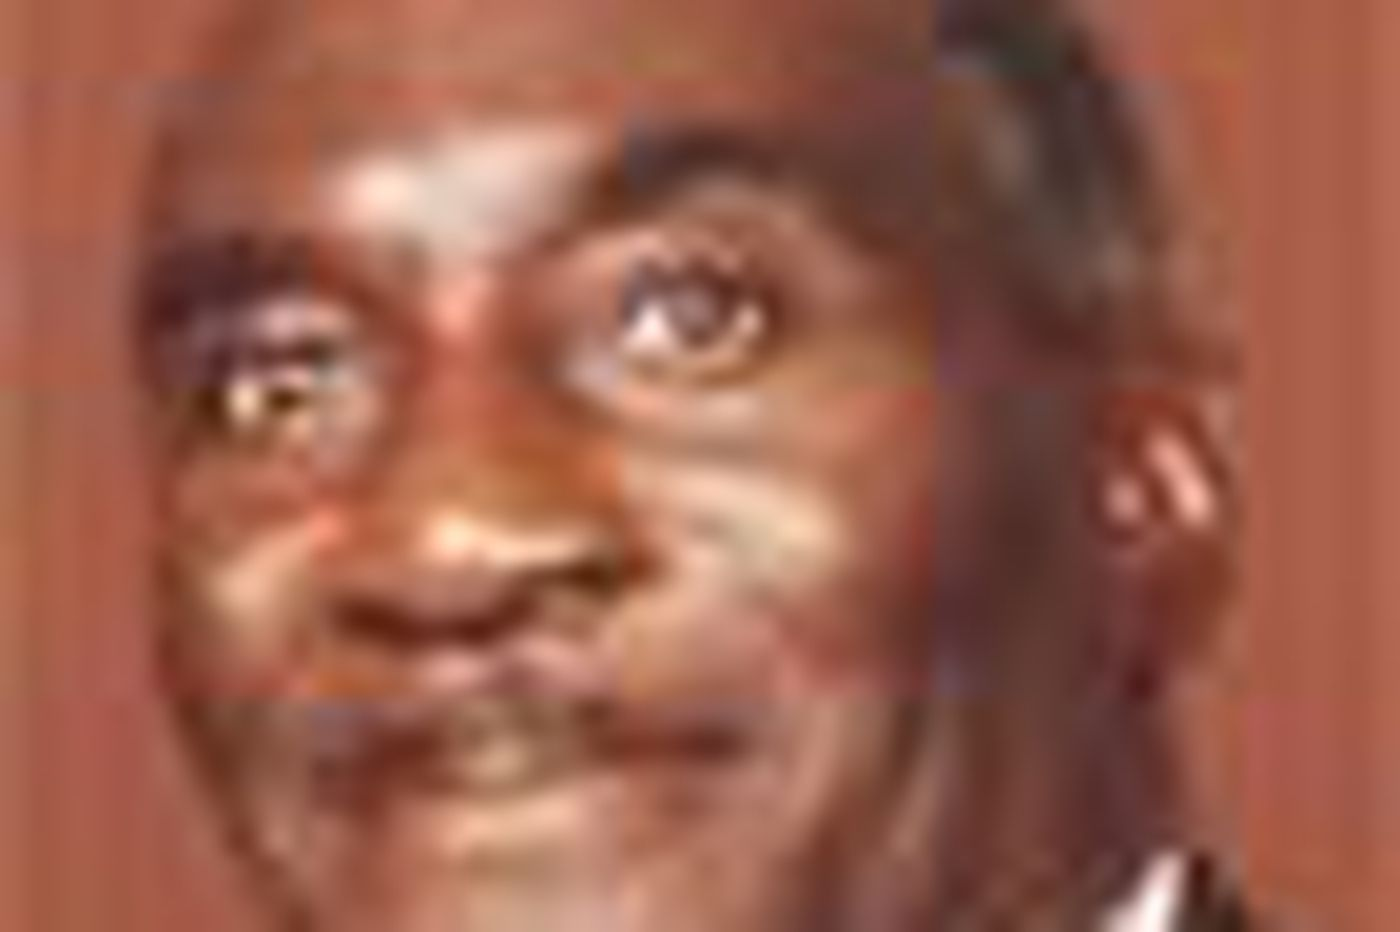 Nepolen Nash, 87, aided the troubled